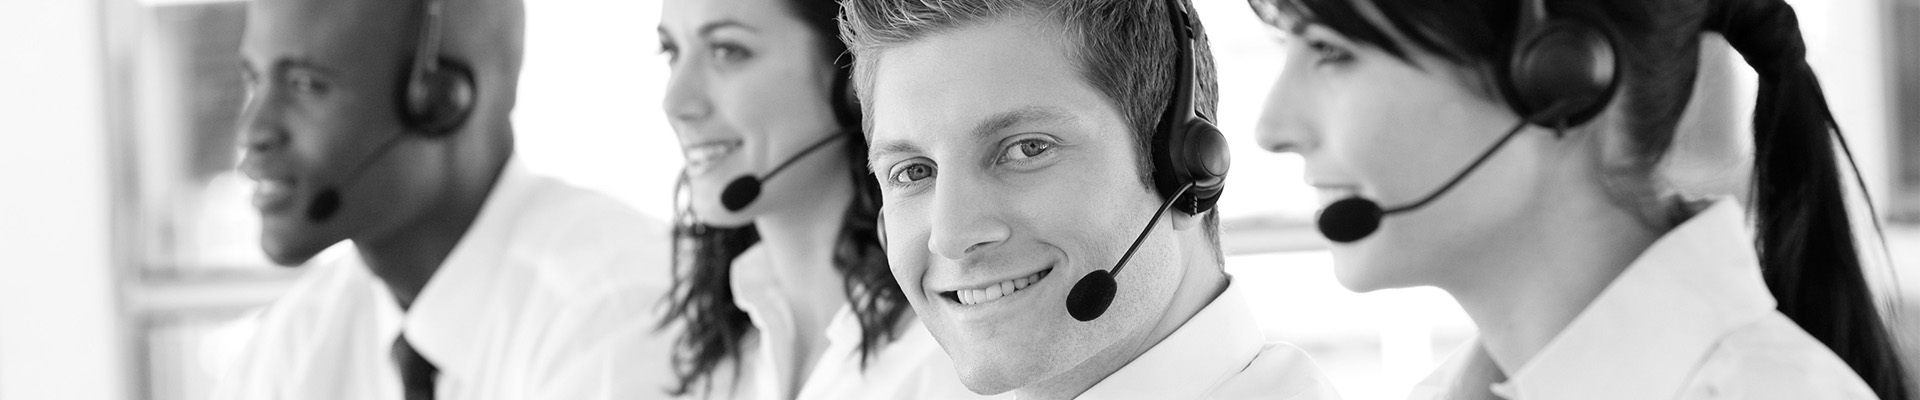 young make smiling whilst working in a call centre